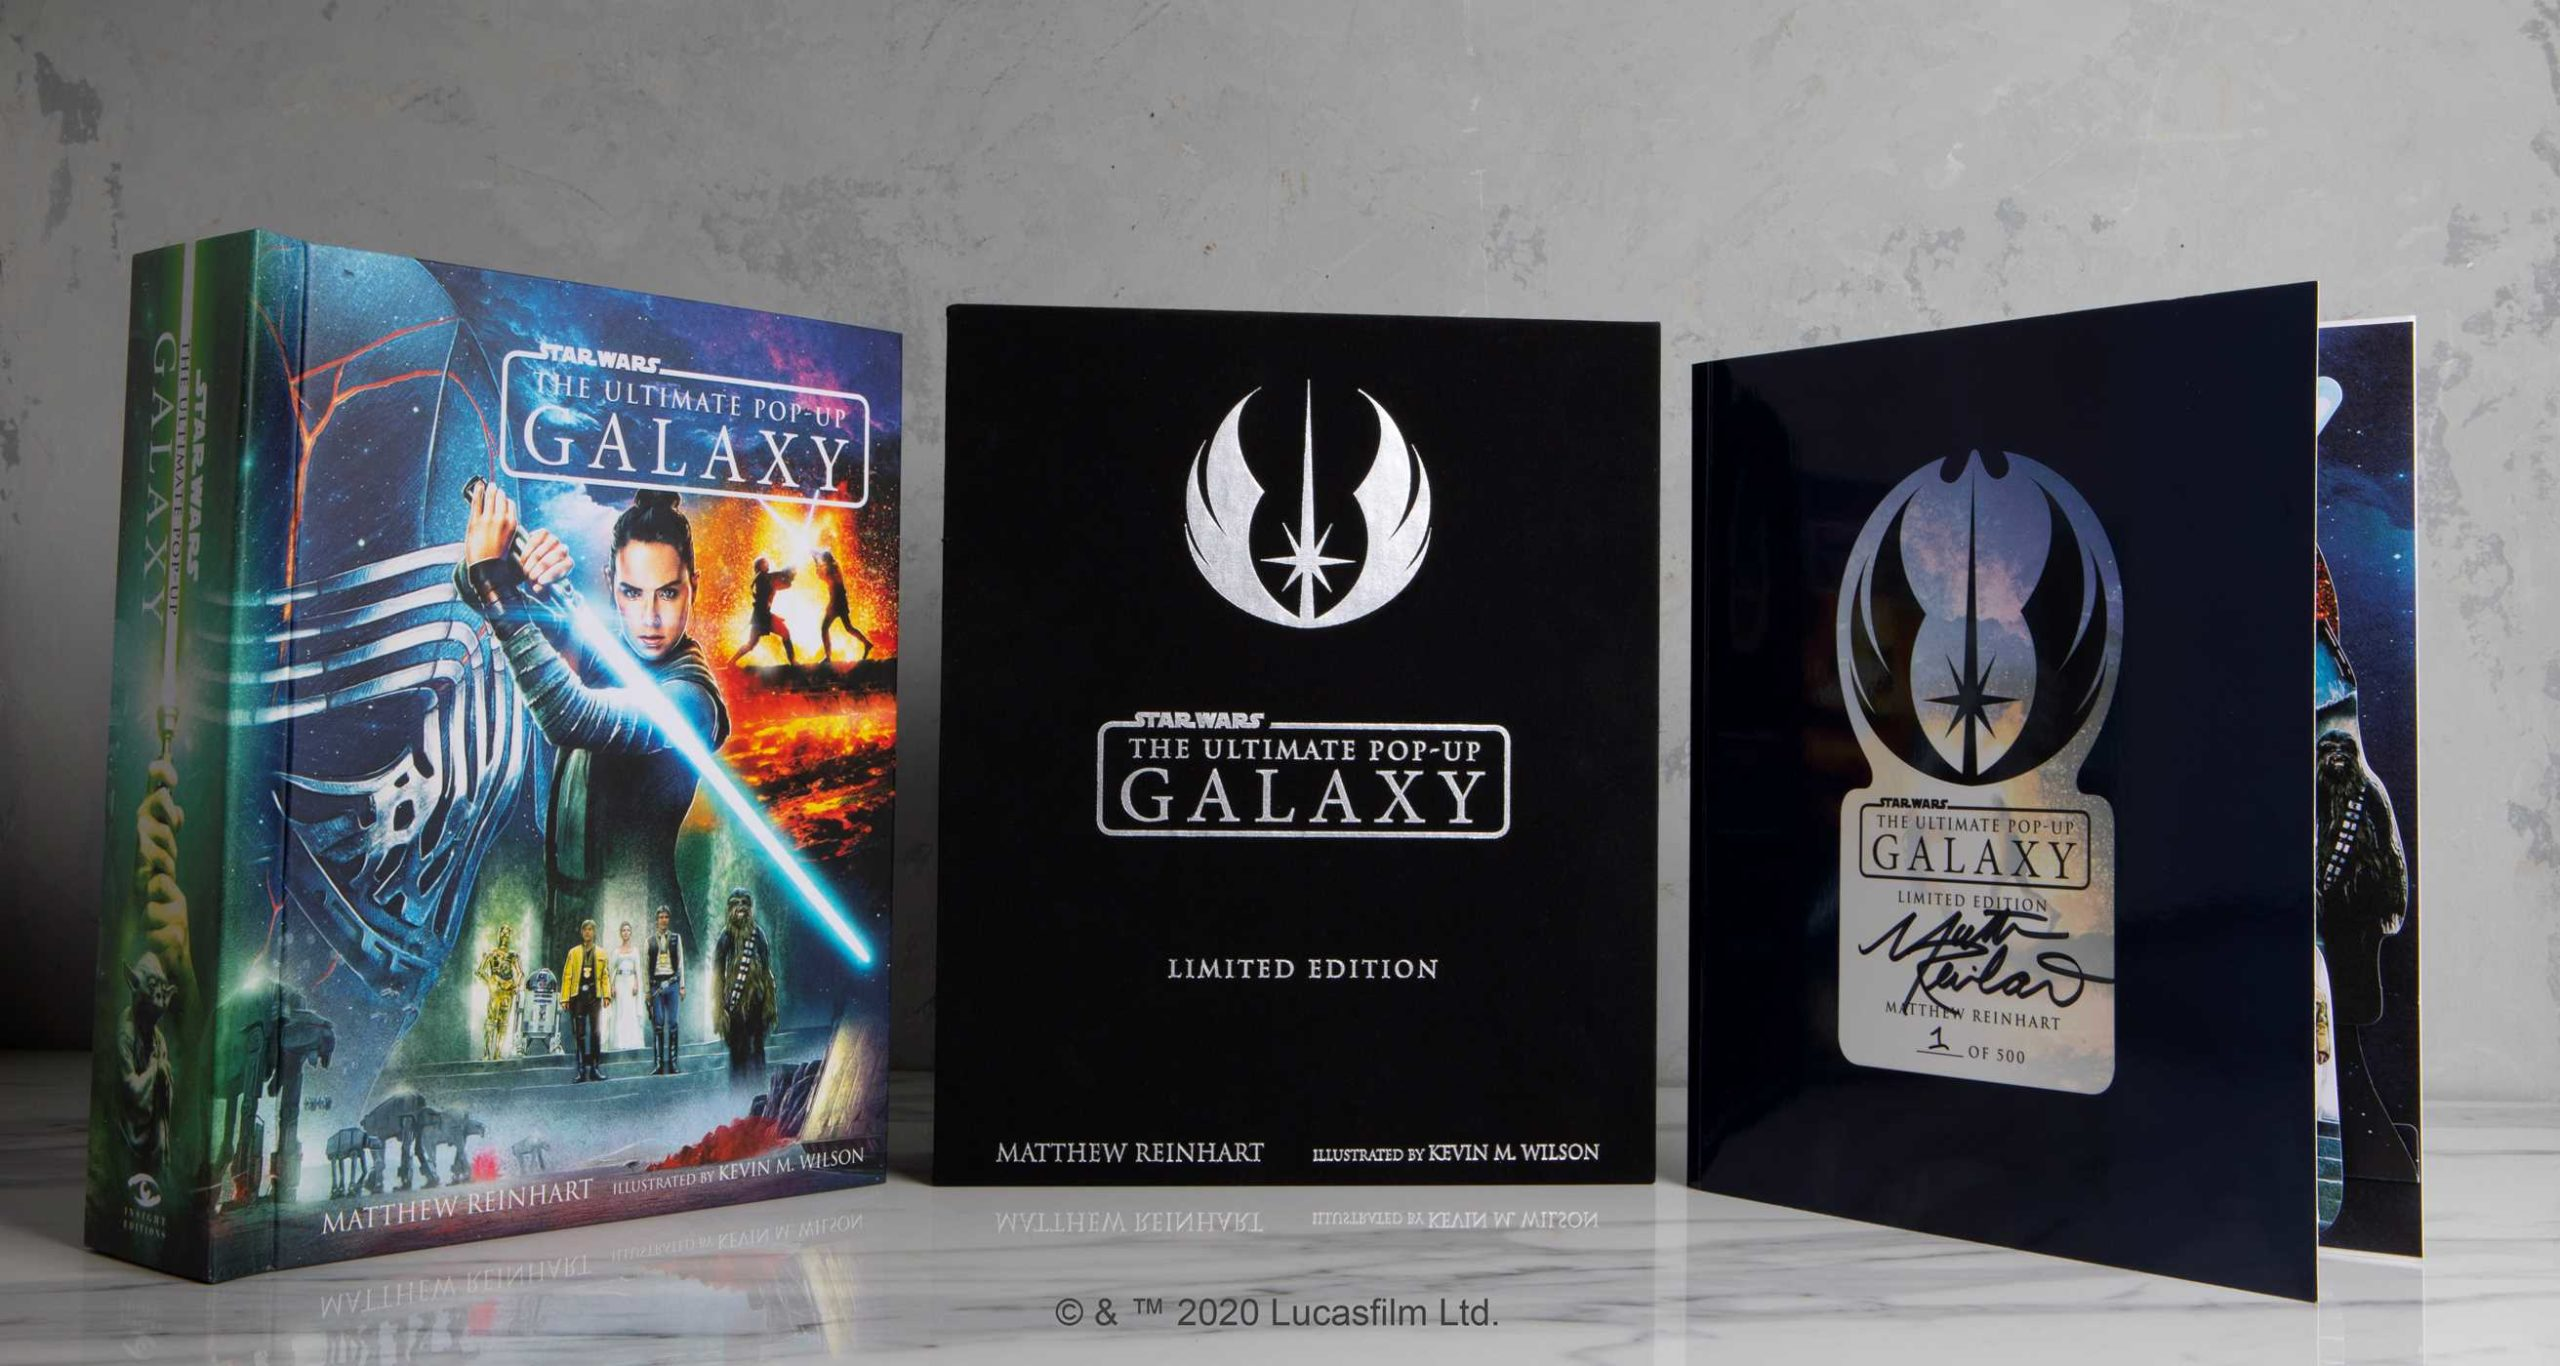 The Ultimate Pop-Up Galaxy Limited Edition (28.04.2020)